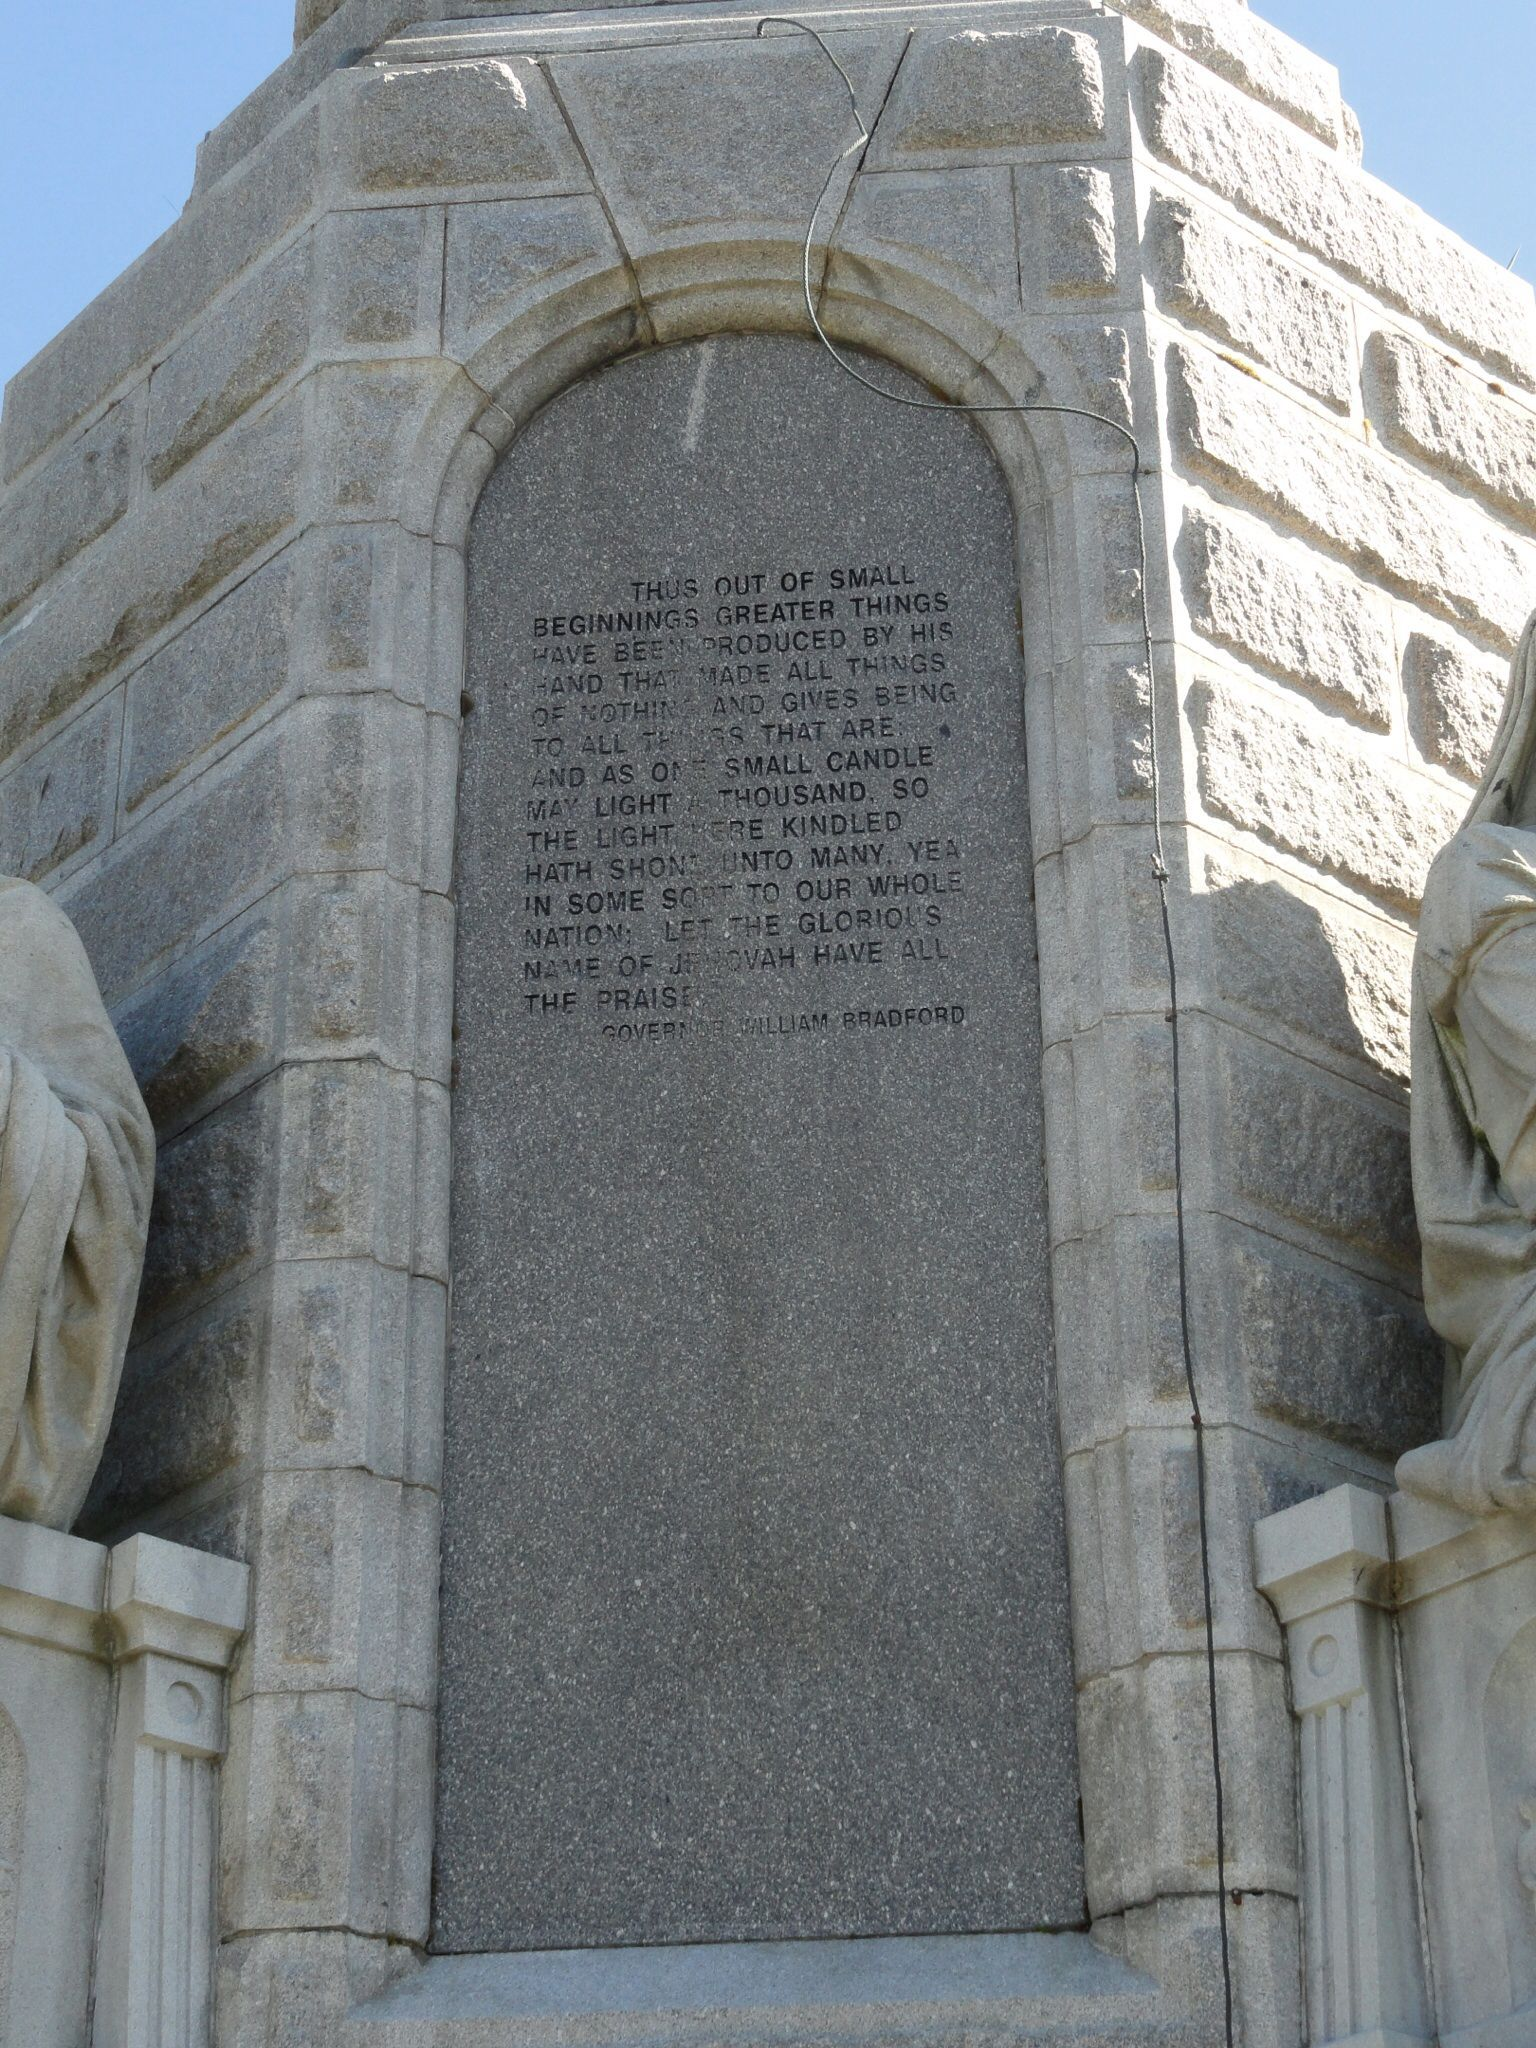 The Christian origin and foundation of the United States engraved years ago in granite, lest we forget. Forefathers Monument, Plymouth, MA